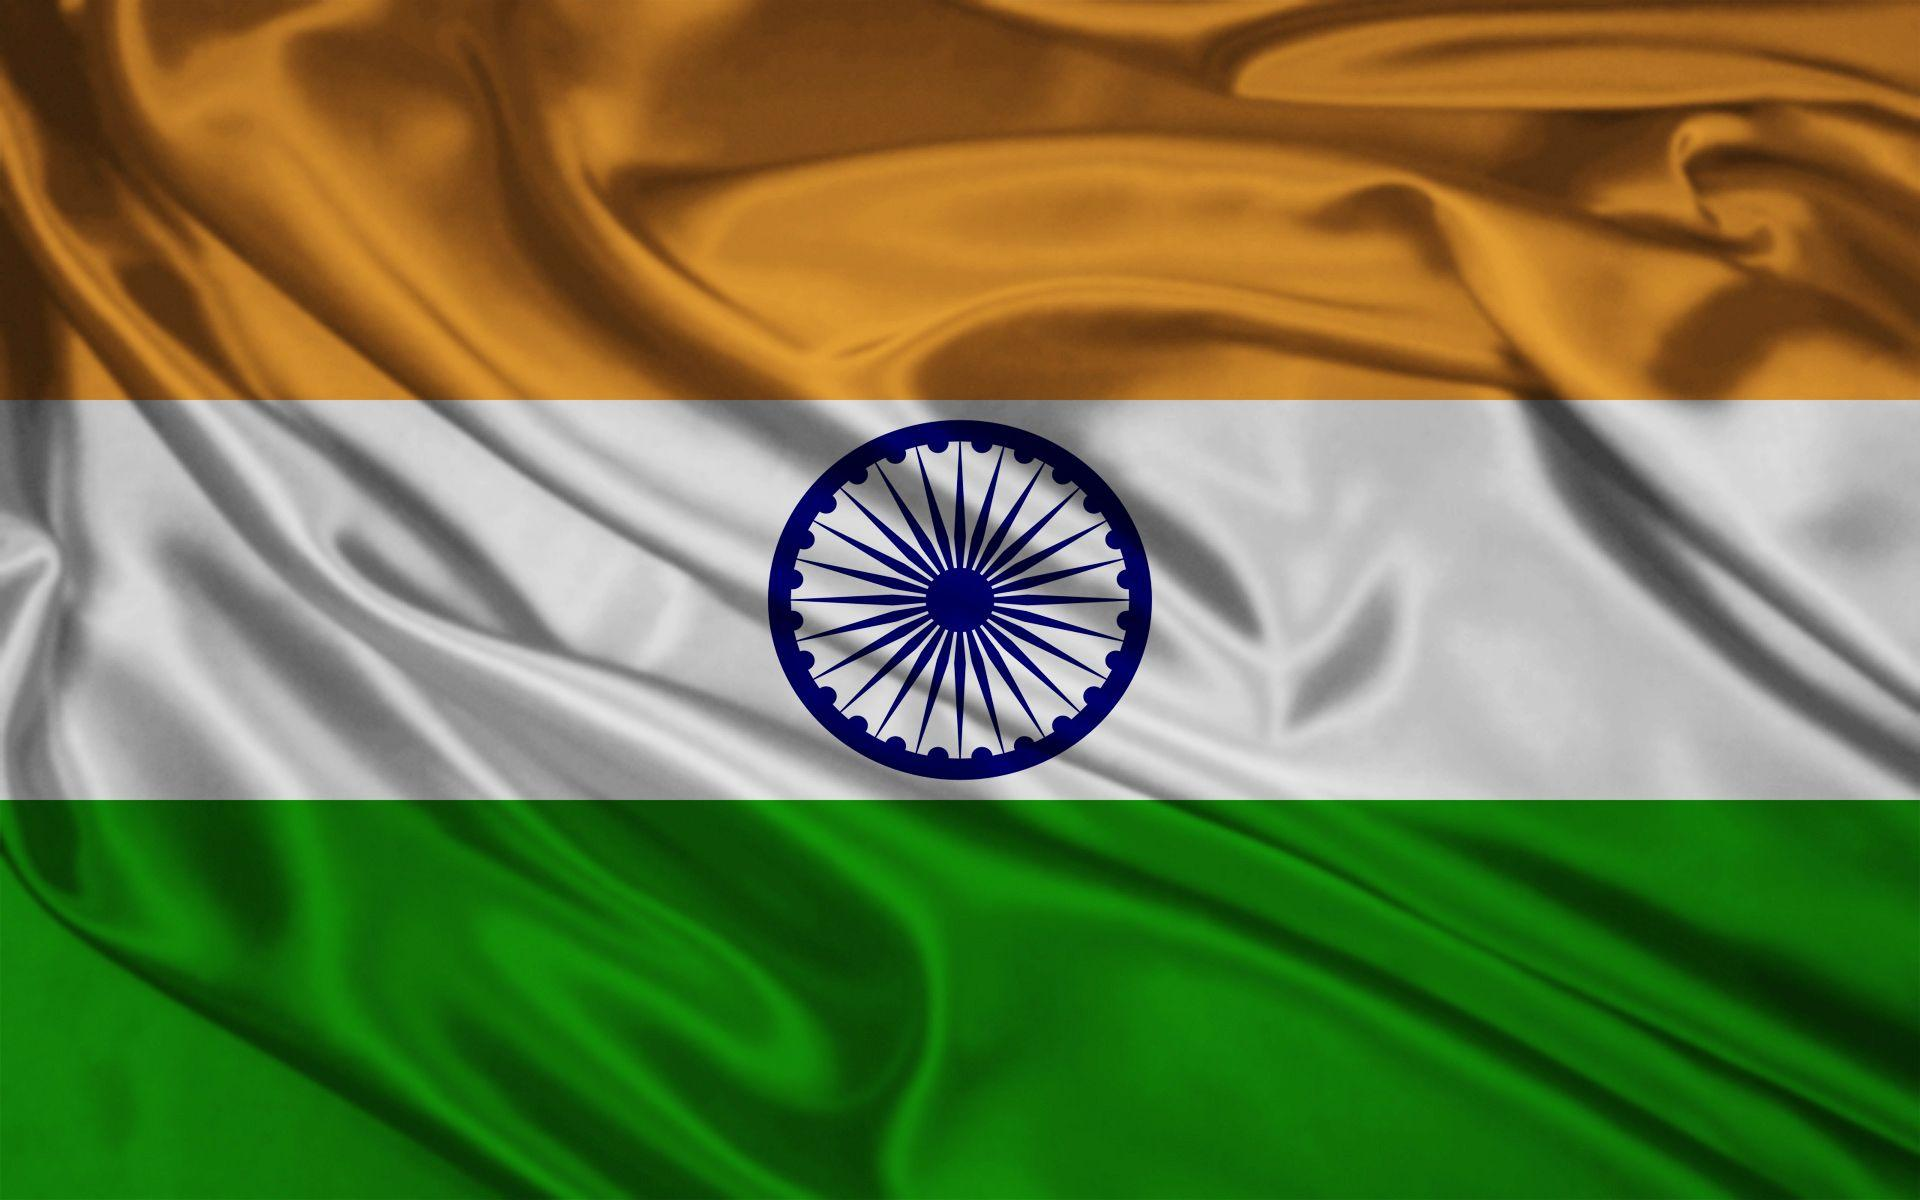 India Flag Hd: India Wallpapers Desktop